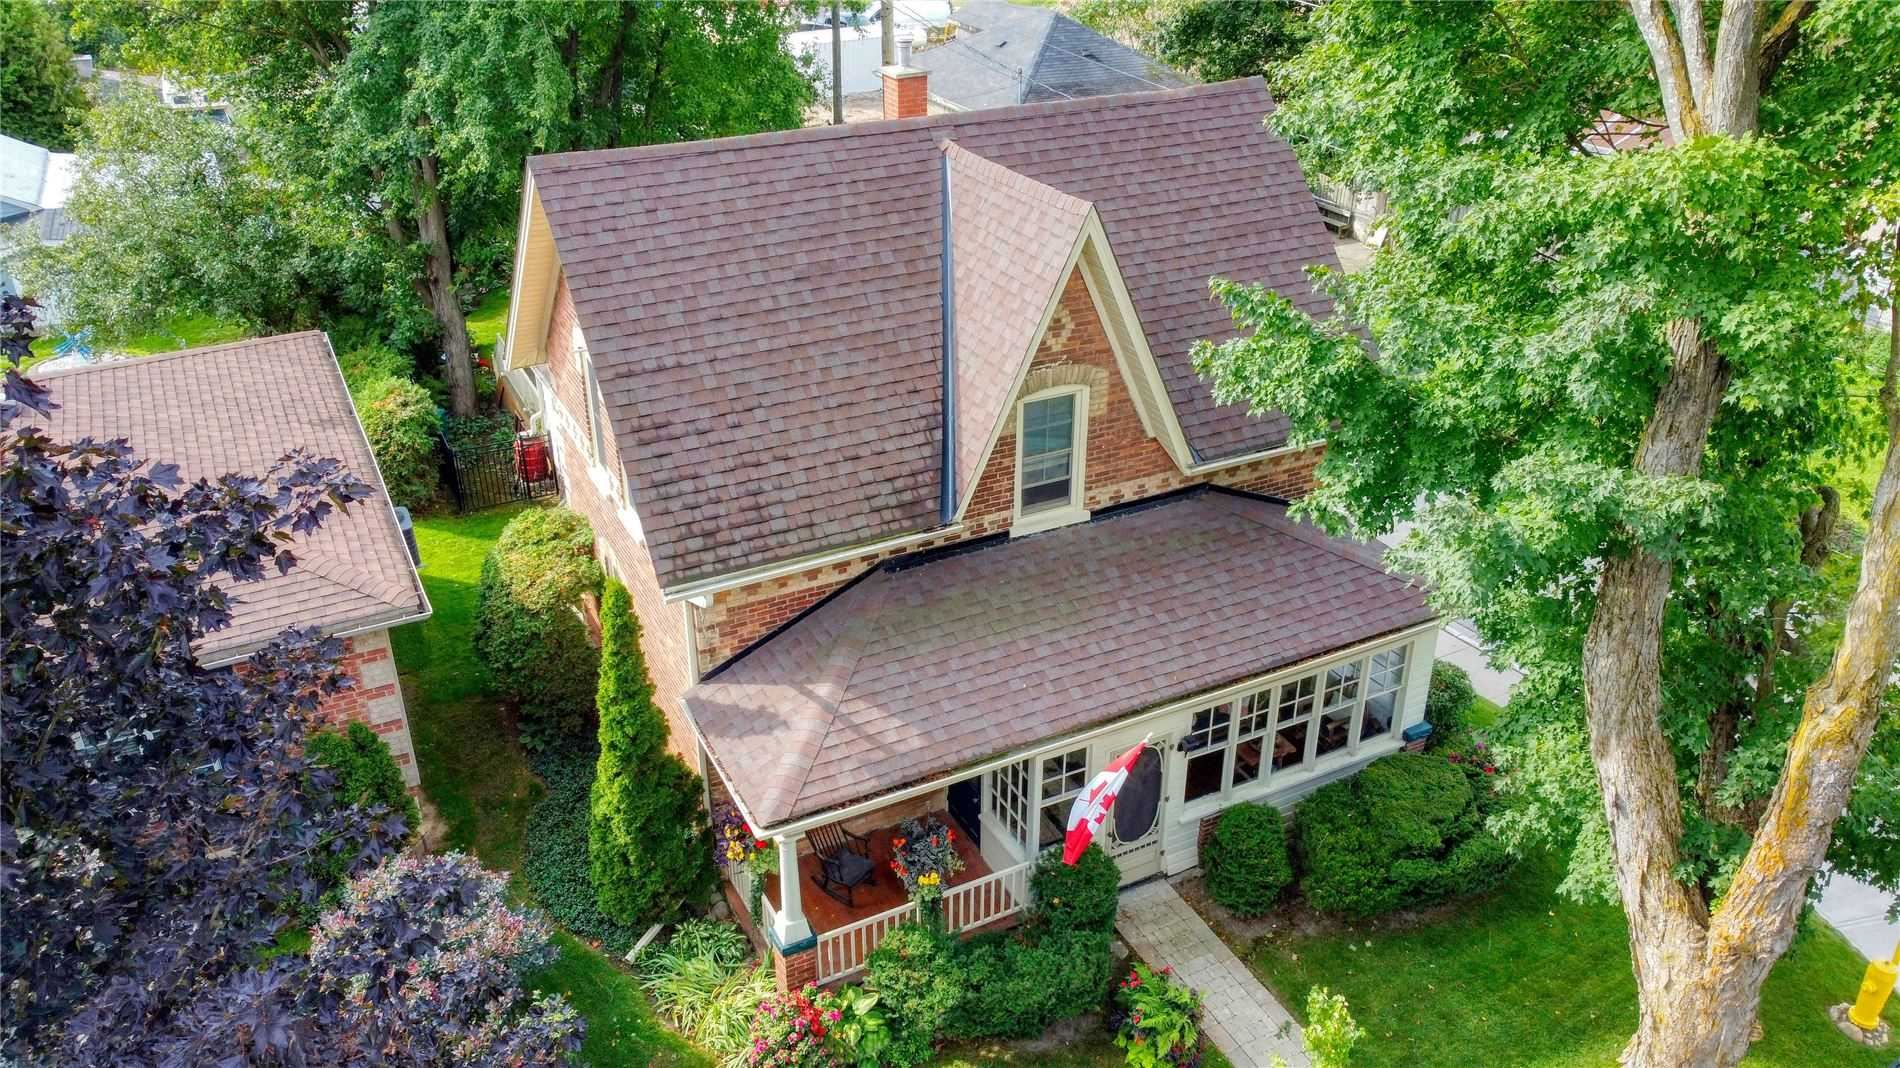 143 First Ave W, Shelburne, ON L9V 2X7 - MLS#: X5406458